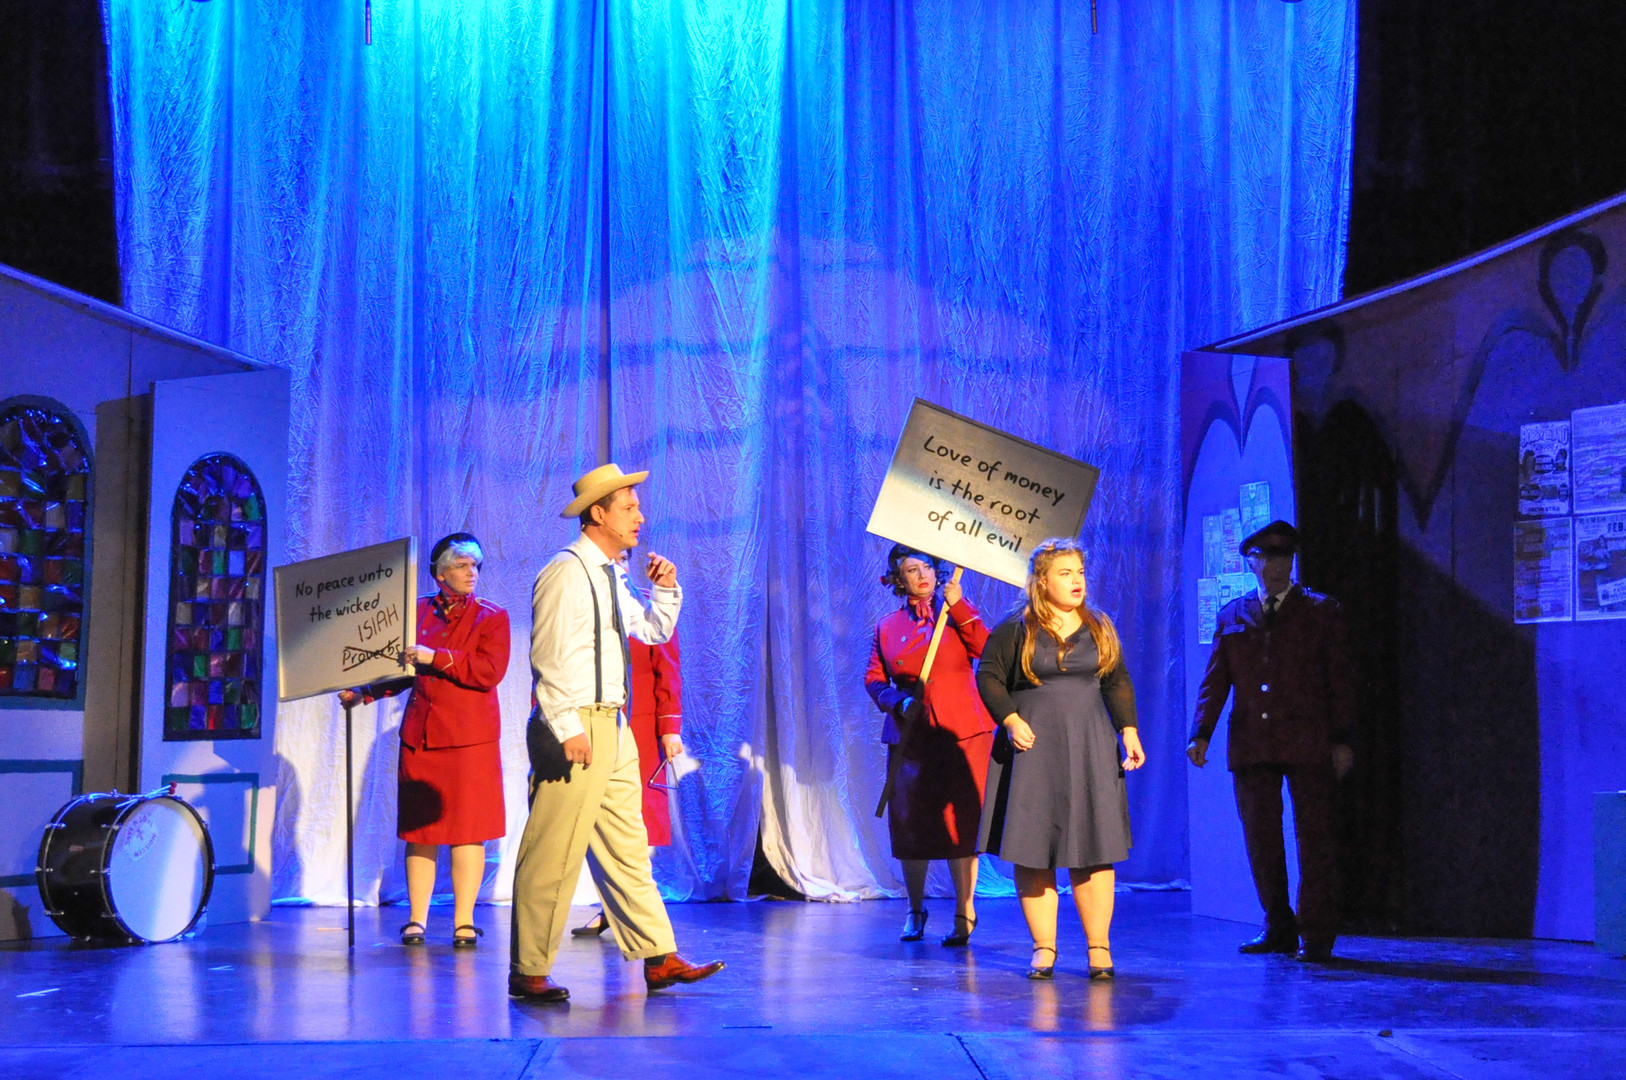 Guys & Dolls - Display 65 (40 of 65).jpg